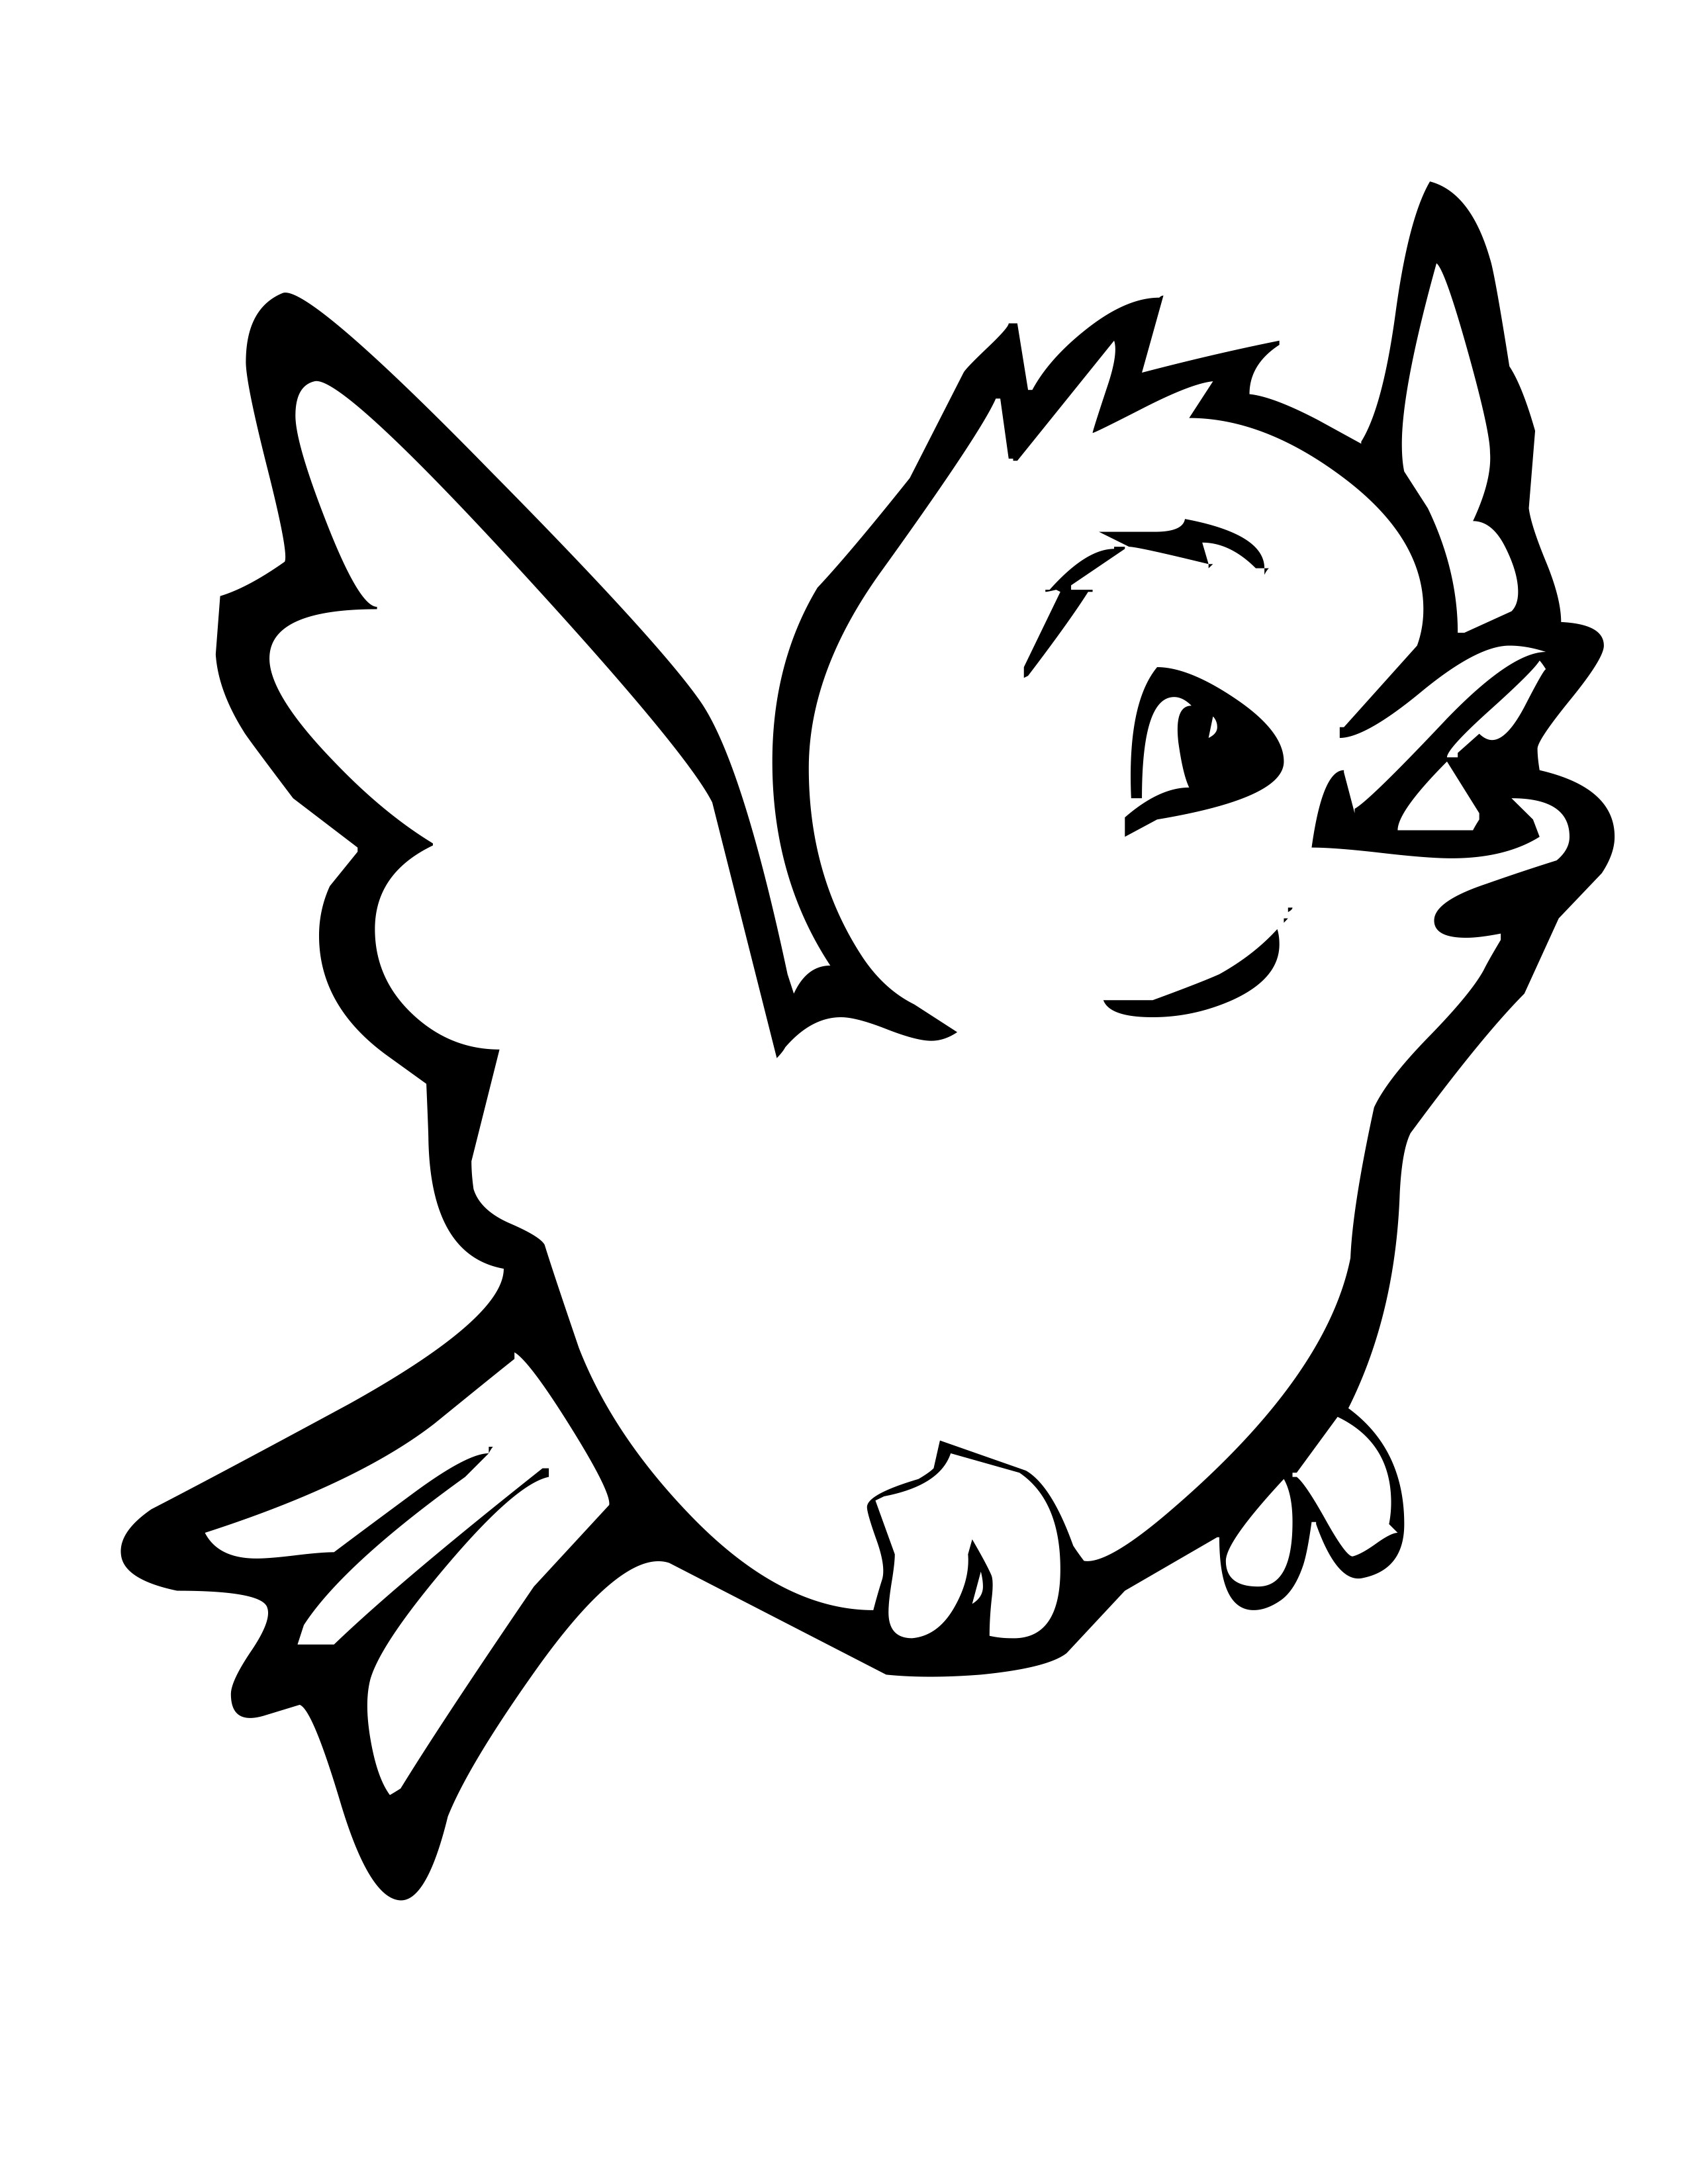 birds coloring images cute bird coloring pages images coloring birds